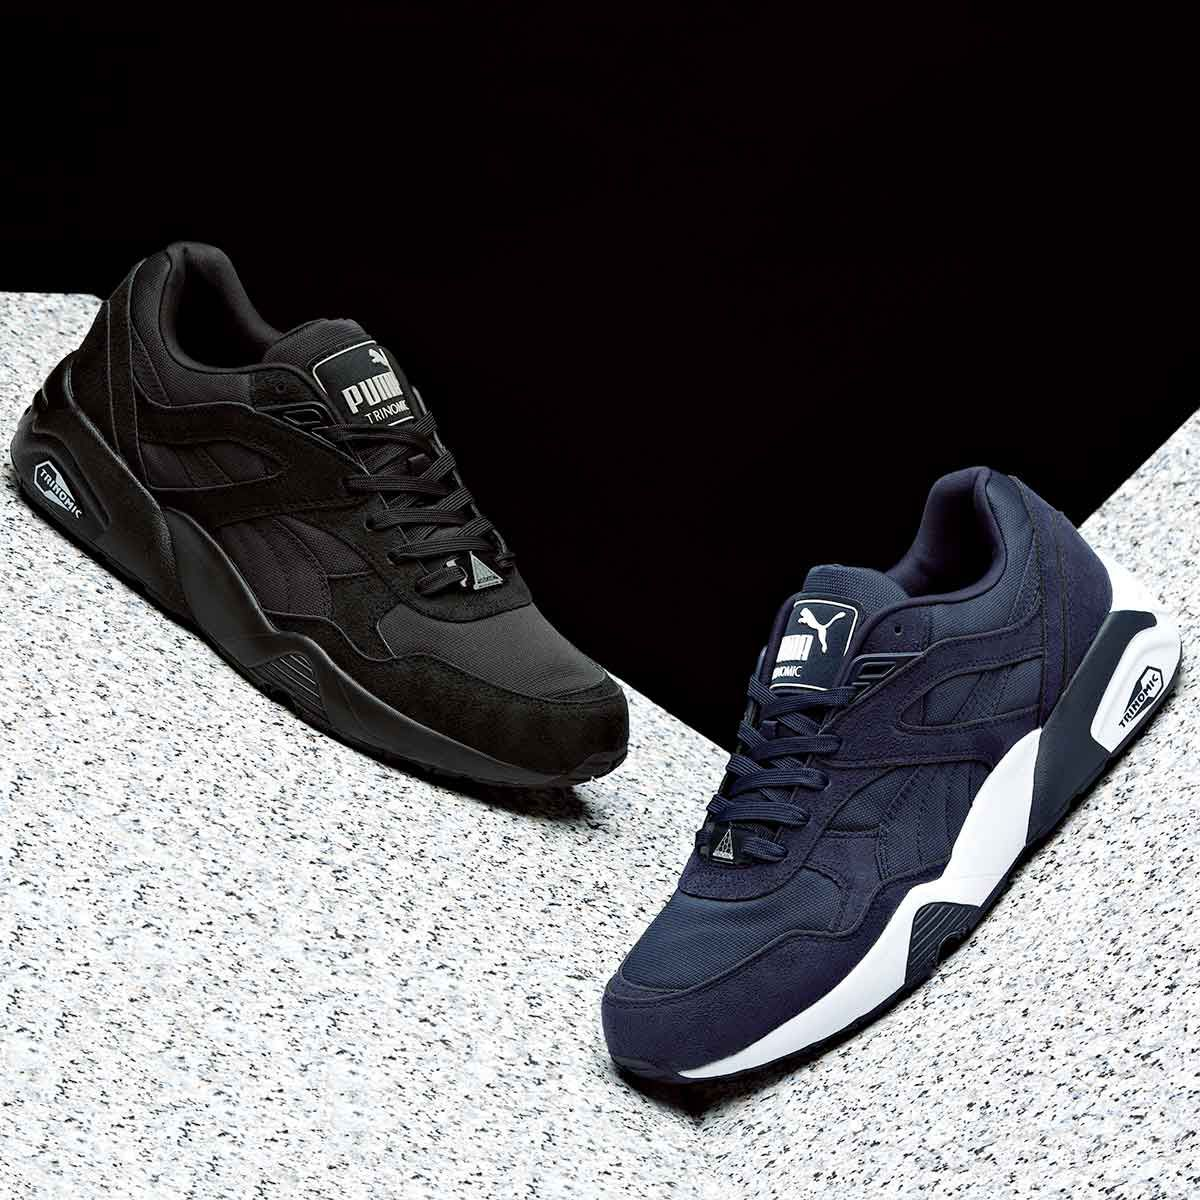 new arrival d61fb 999de The popular Puma Trinomic R698 Trainer in two brand new colour-ways. Black    Drizzle and Peacoat   White.